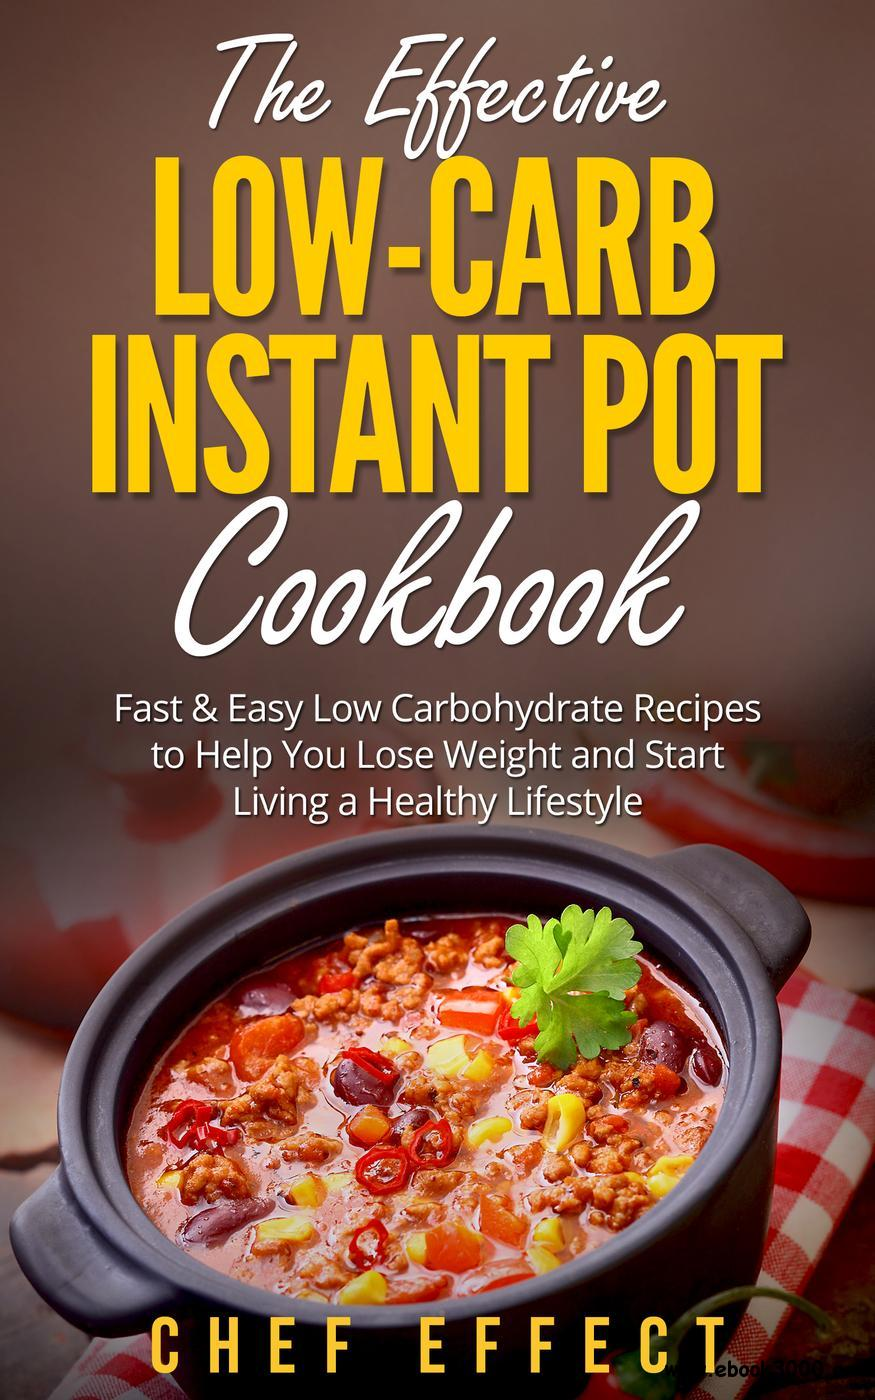 The Effective Low-Carb Instant Pot Cookbook: Fast & Easy Low Carbohydrate Recipes to Help You Lose Weight and Start Living...